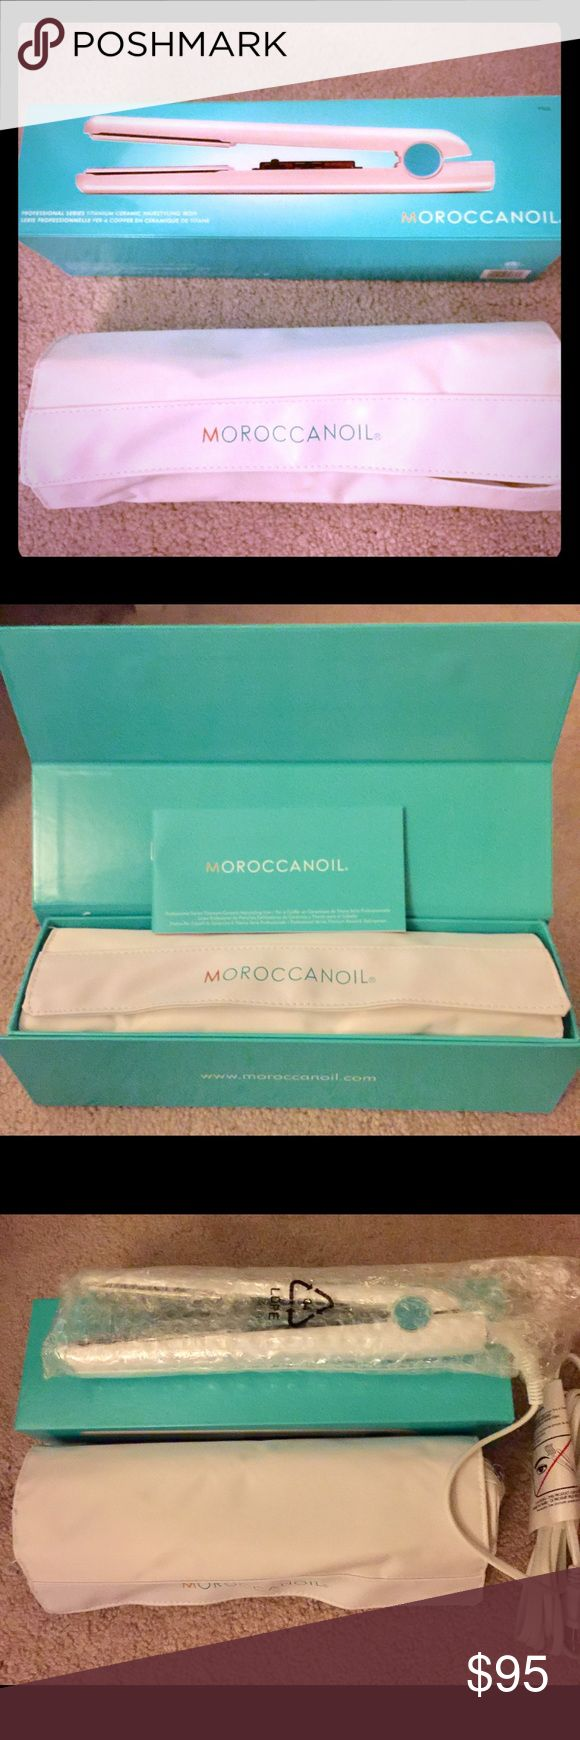 """Moroccanoil Professional flat iron 1""""-NEW NEW!! Item still has the bubble wrap on it! MOROCCANOIL Professional Series Titanium Ceramic Hairstyling Iron combines form, function and versatility. Ergonomically designed for ease of use this high-performance flat iron allows for a range of silky, frizz-free styles - from sleek and shiny to wavy and curly. FREE HEAT RESISTANT MAT AND CARRYING CASE!  Max adjustable temp up to 450 degrees. Retails at $192! Moroccanoil Other"""